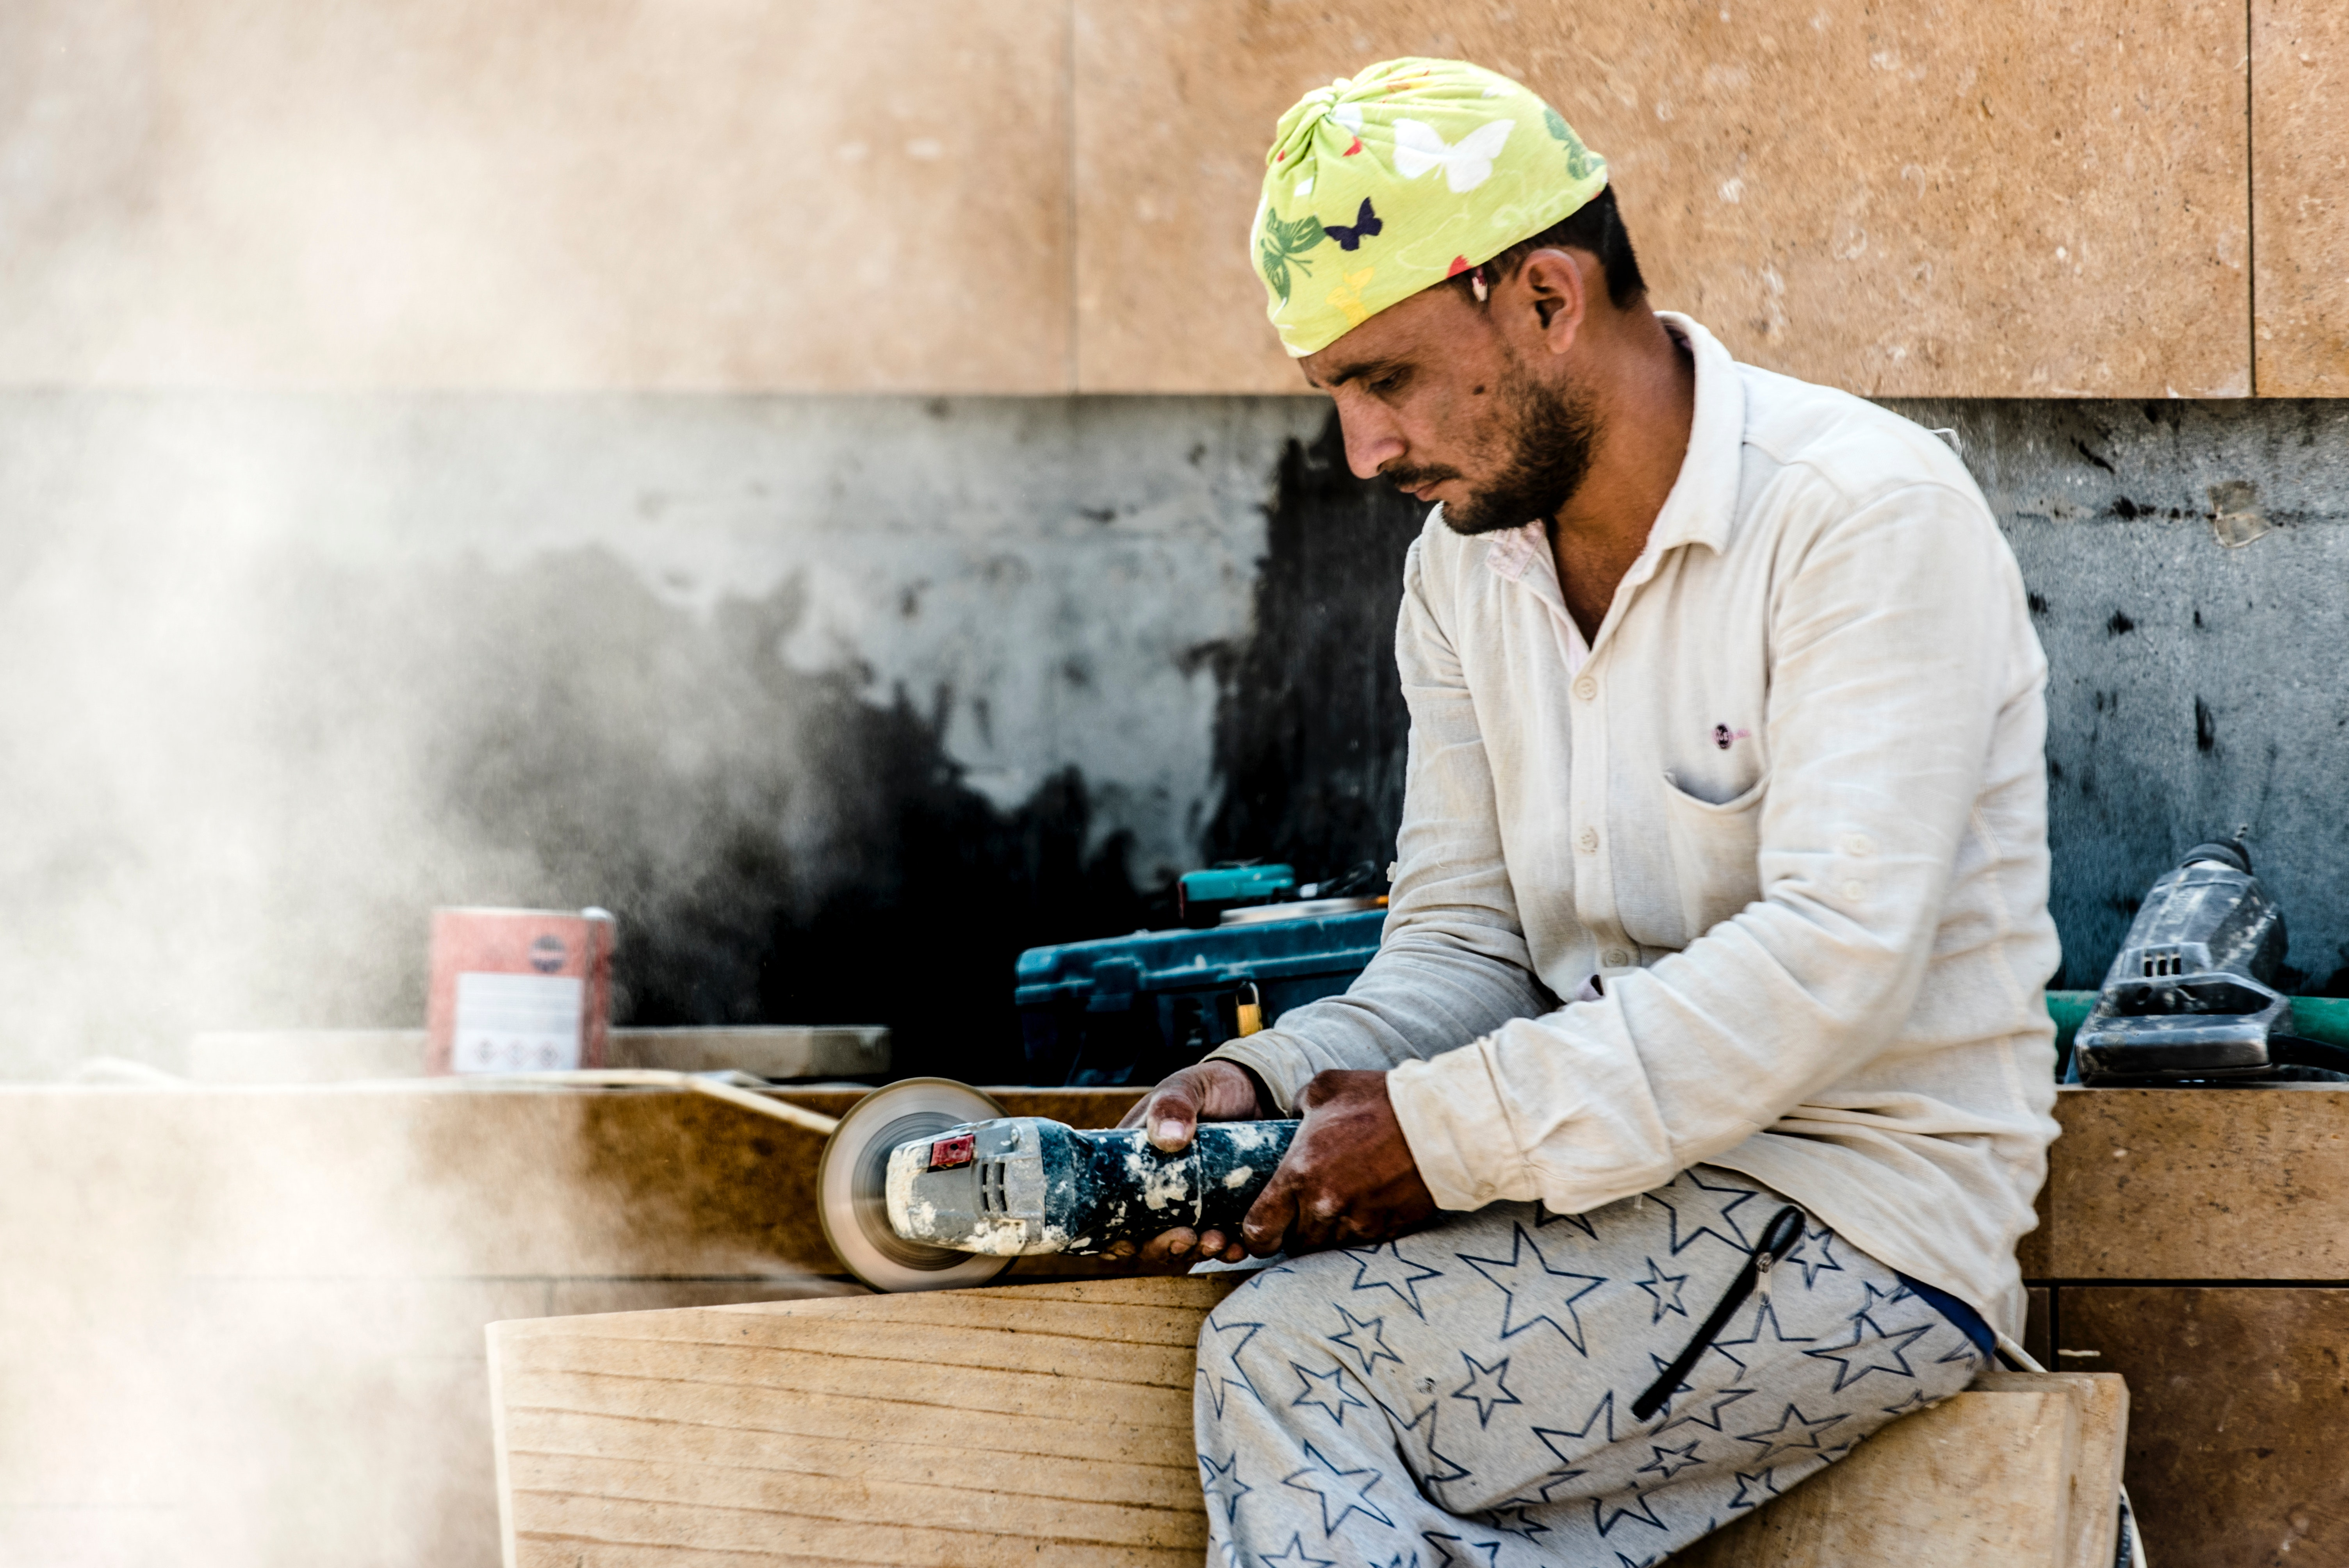 Man using angle grinder photo